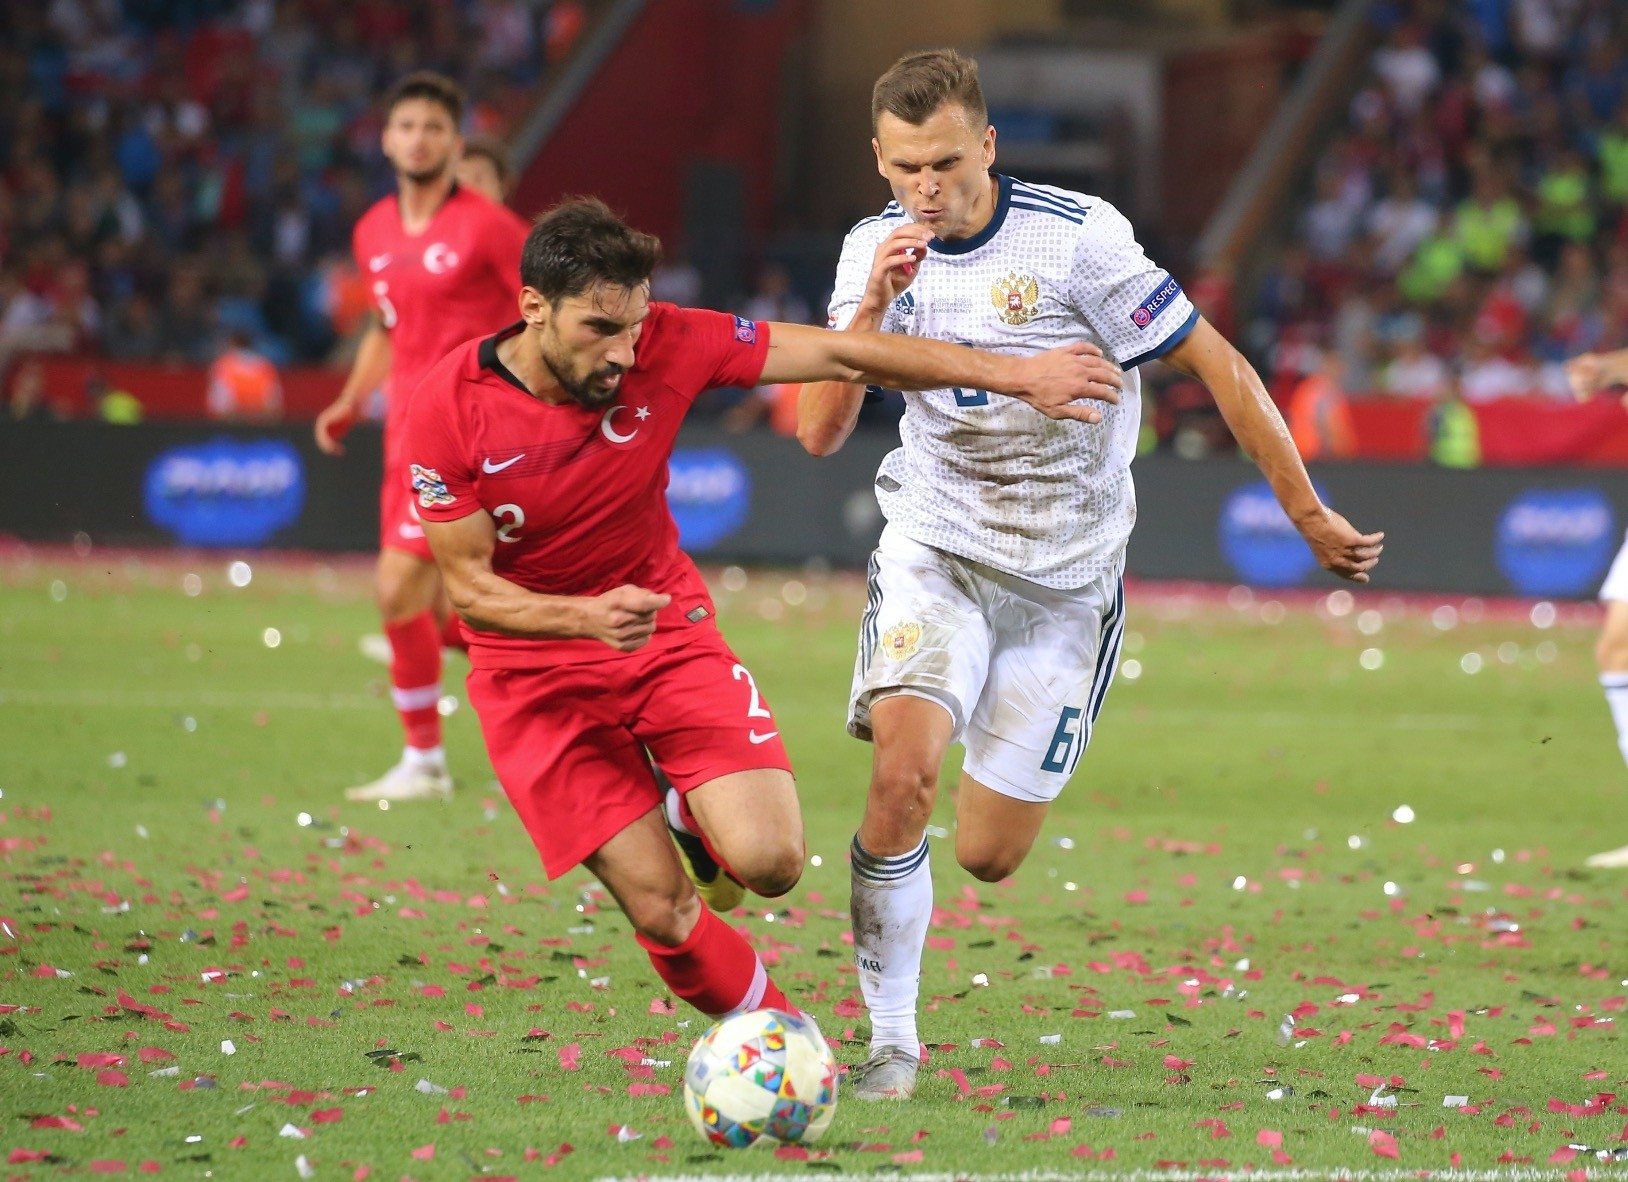 u015eener u00d6zbayraklu0131 (L) tries to dribble past Russiau2019s Denis Cheryshev during the UEFA Nations League match in Trabzon, Turkey, Sept. 7.